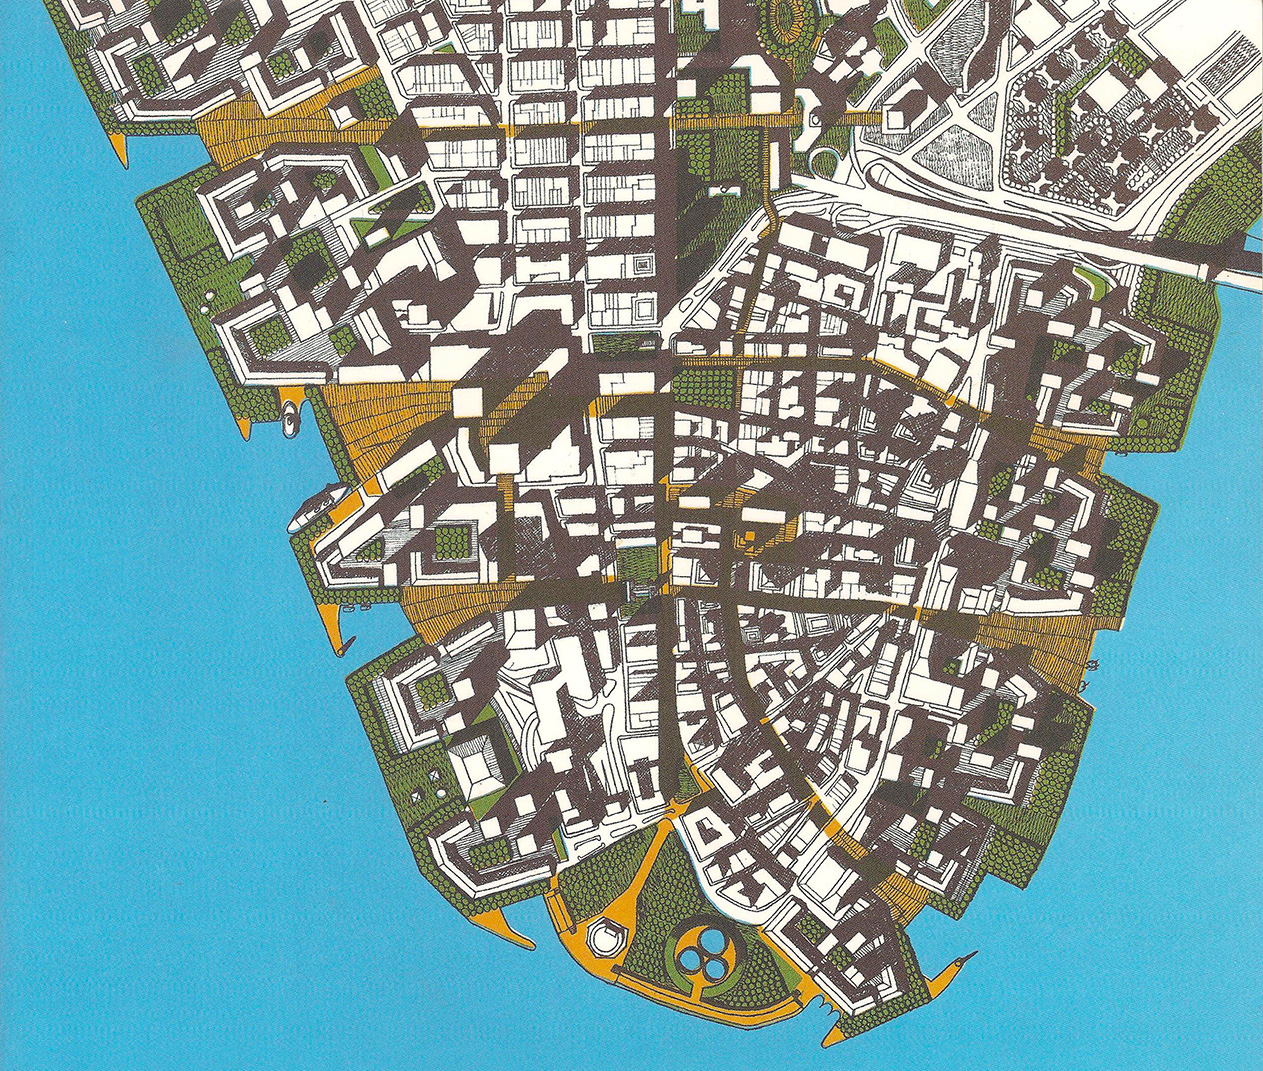 hyperreal cartography and the unrealized city ...